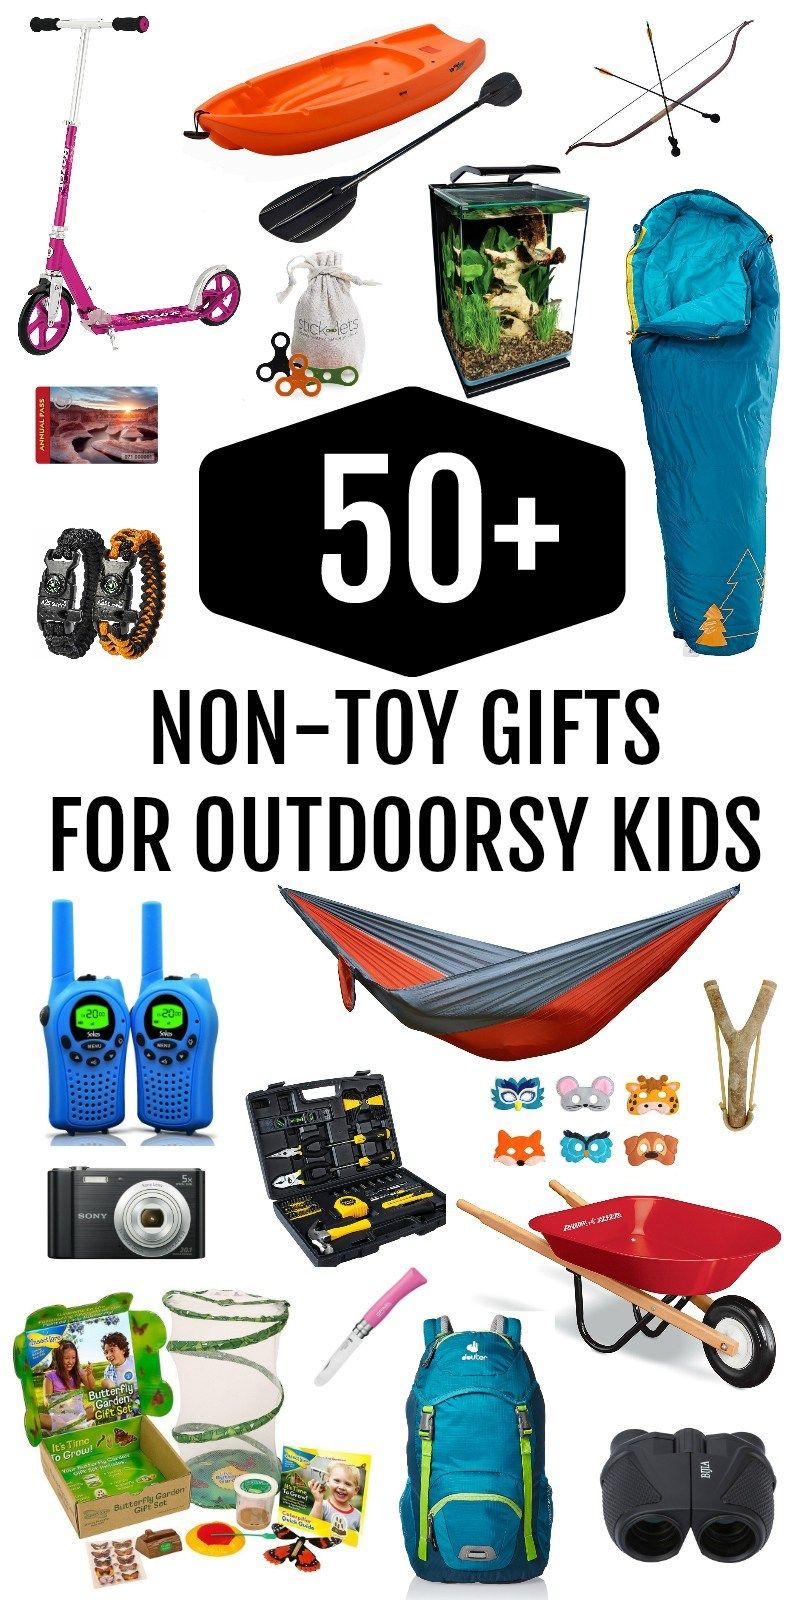 The Ultimate NonToy Gift Guide for Outdoorsy Kids